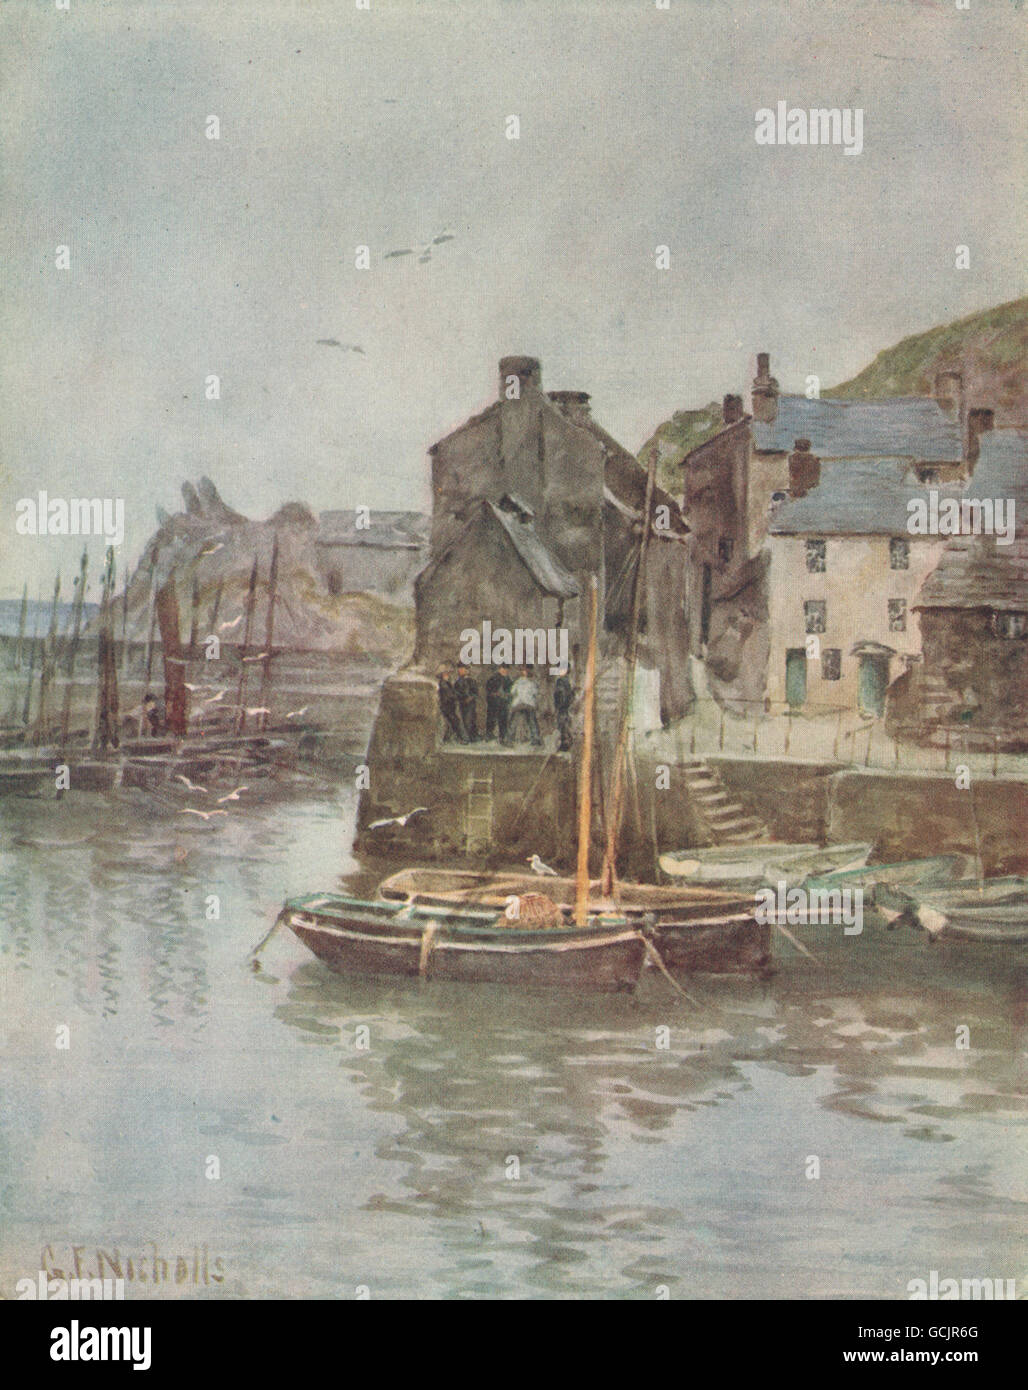 POLPERRO. View of the harbour. Fishing boats. By G. F. Nicholls, print 1915 - Stock Image